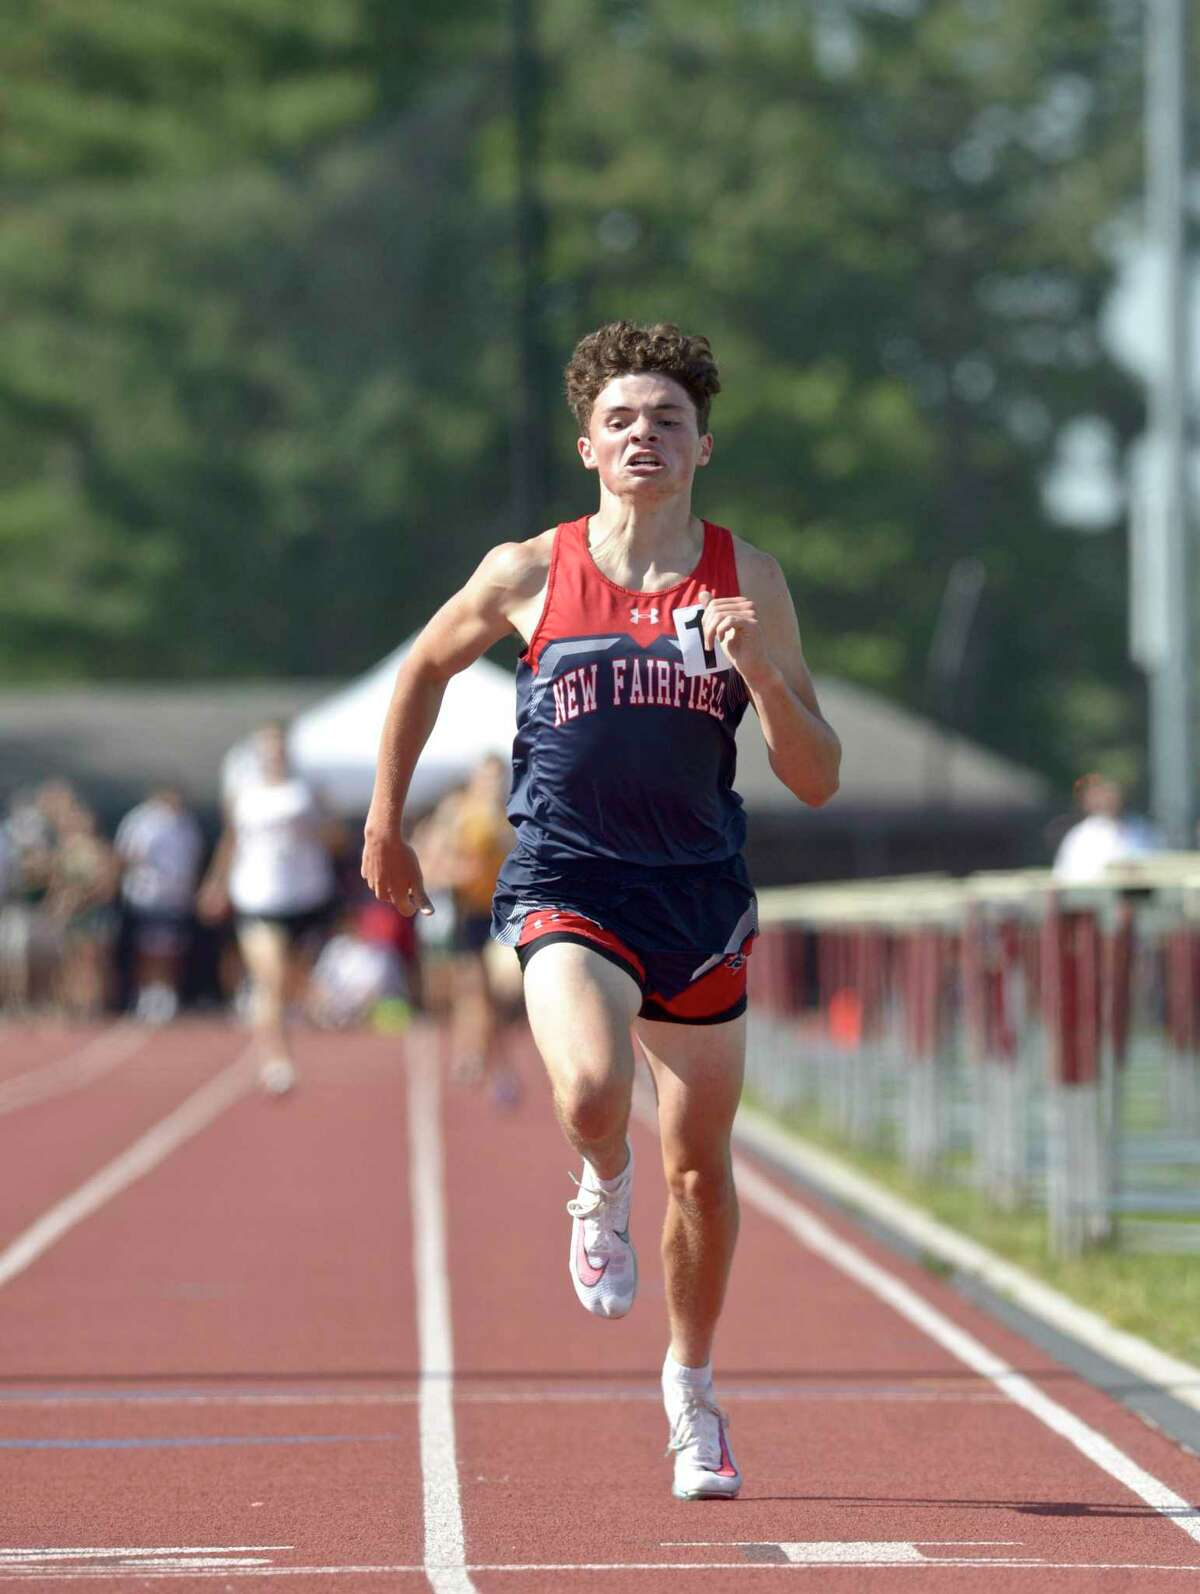 New Fairfield's Patrick Gibbons held on to his early lead to place first in the 1600 meter run at the SWC boys track and field championships, Tuesday afternoon, May 25, 2021, at Bethel High School, Bethel, Conn.